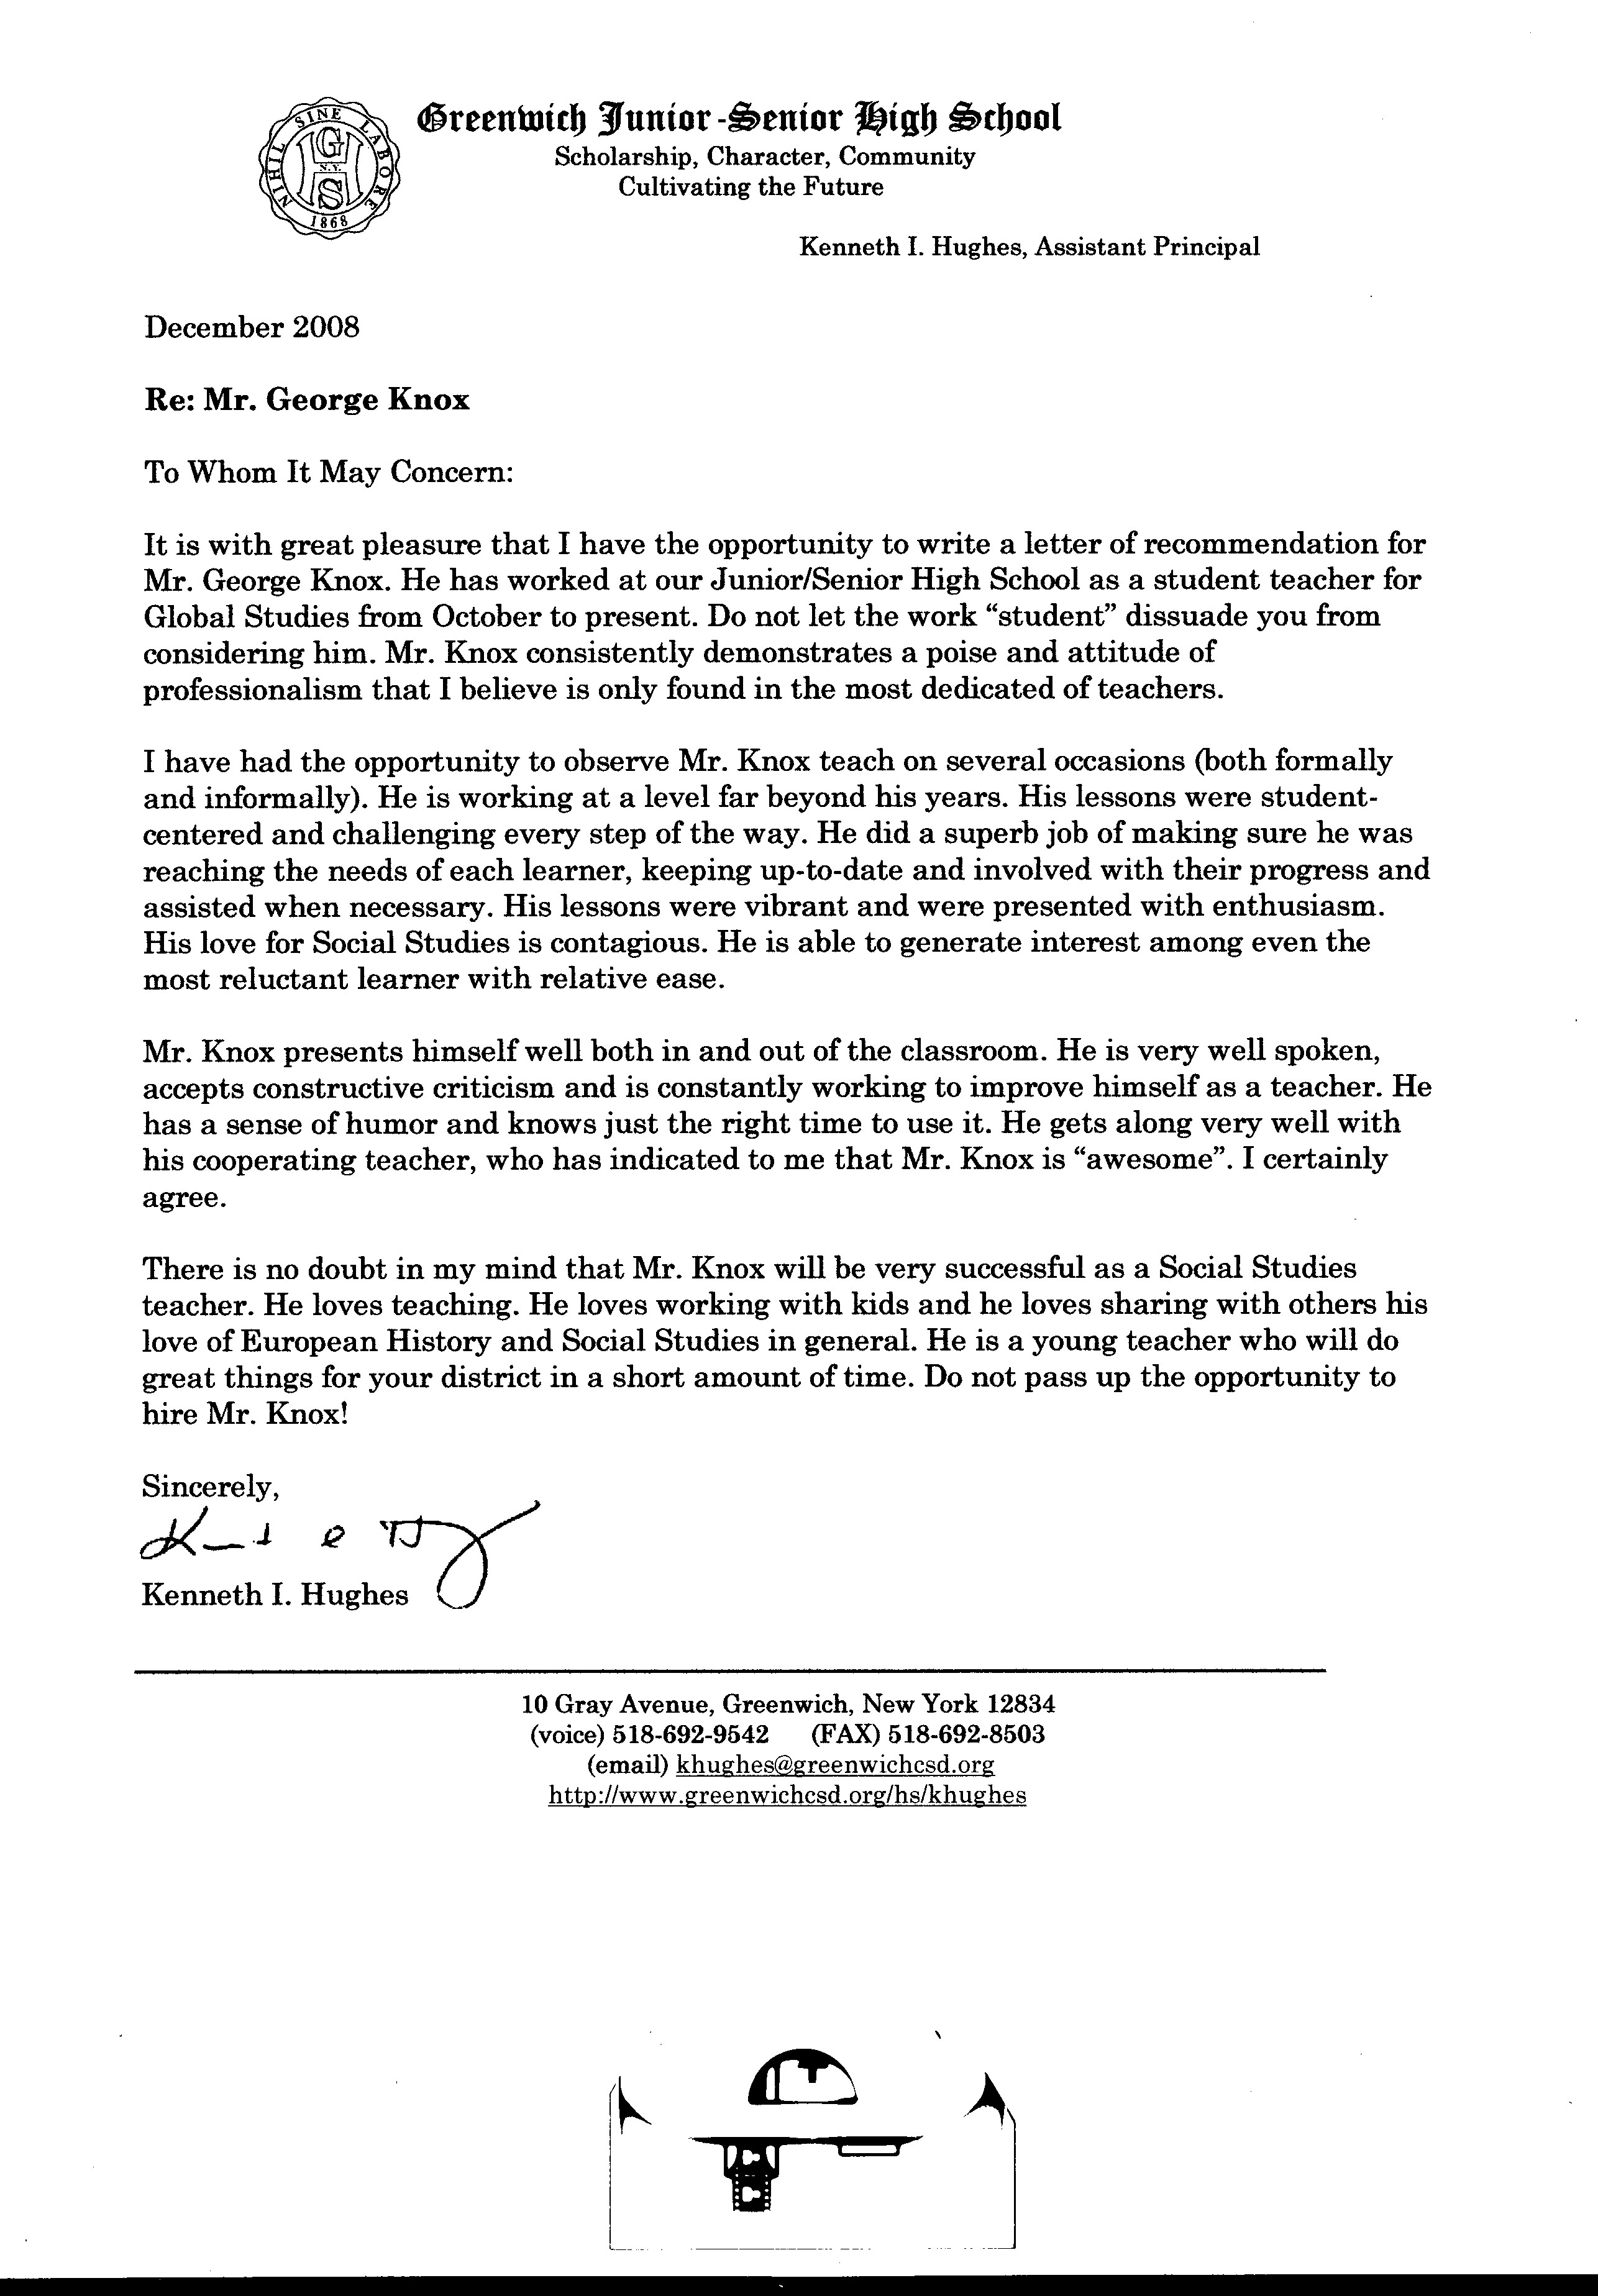 005 Essay Example High School Essays Proper Letter Format New College Scholarship Wri No Scholarships For Students Free Contest Examples Canada Astounding Sample About Yourself Admission Full